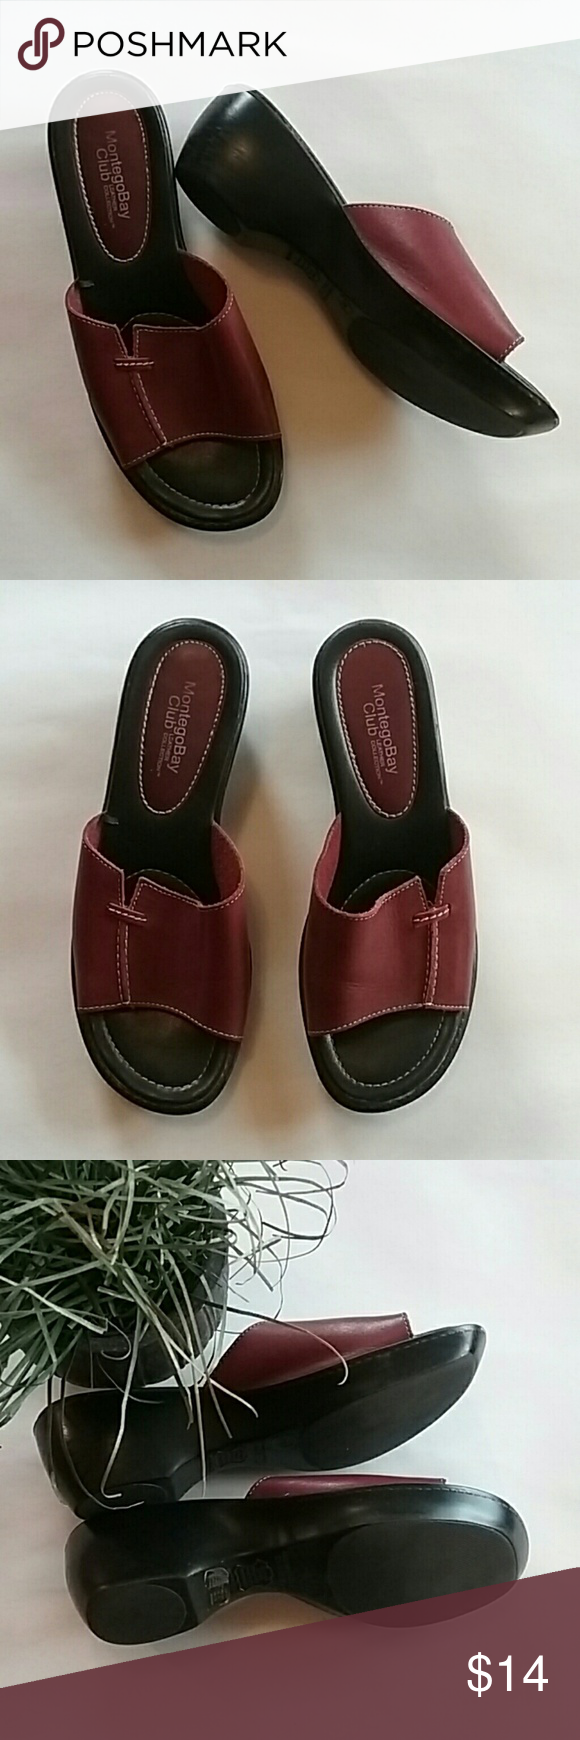 c8d30ba80 Montego Bay Club leather sandals in exc cond Leather upper. The only wear  is some scratches on the sides of the black heels. See pic 4.